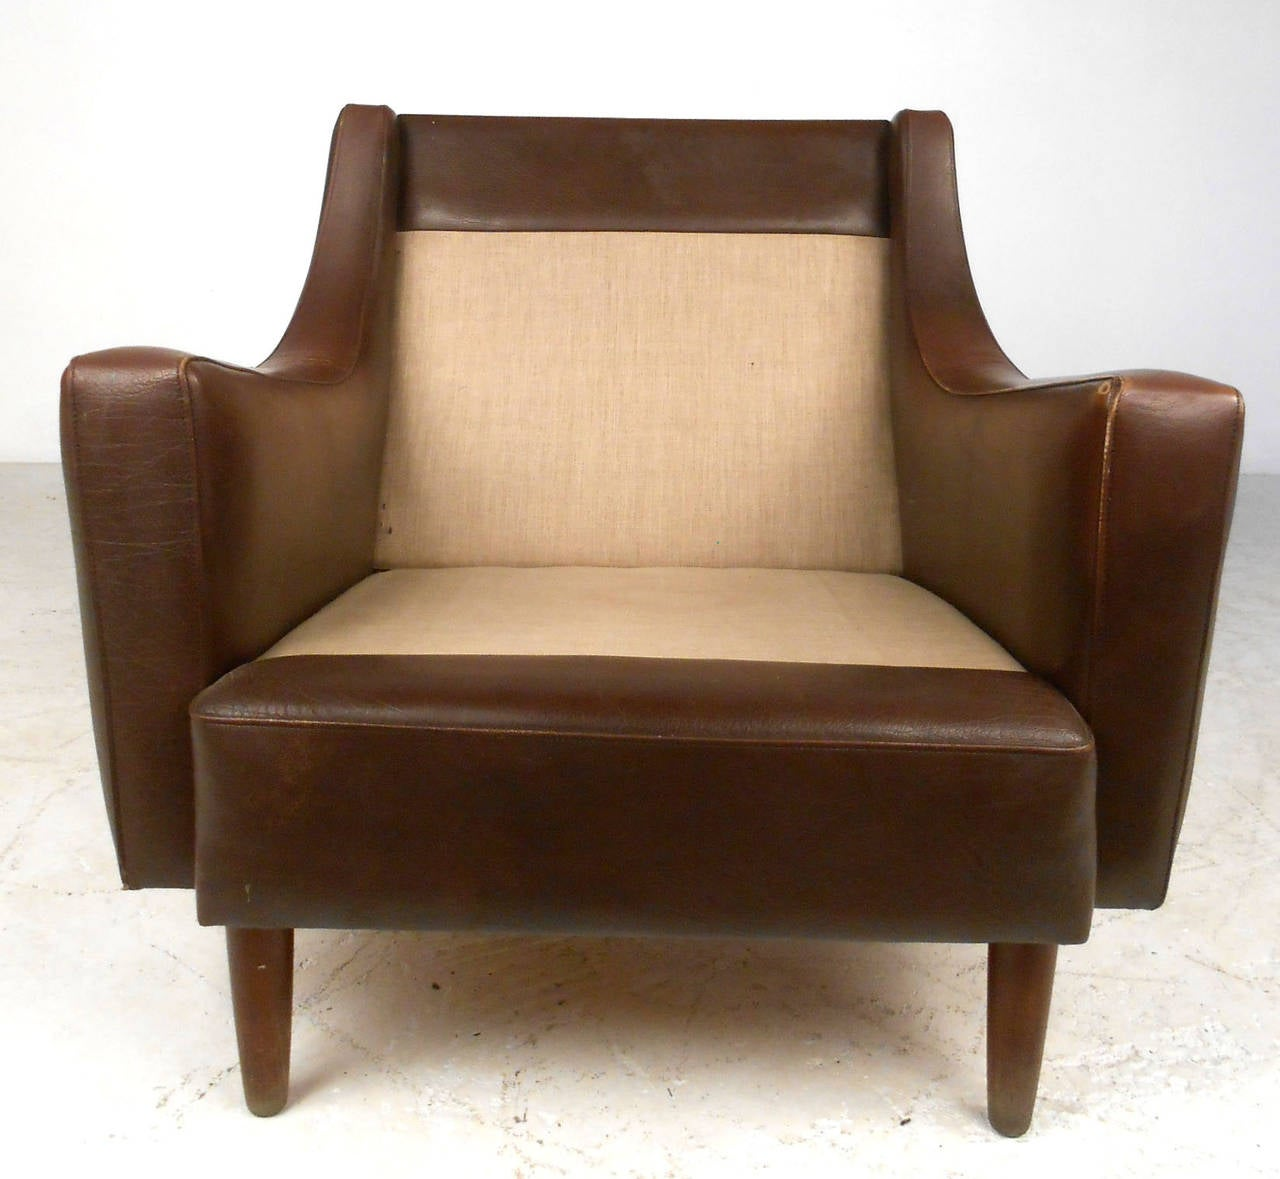 Modern Club Chairs Mid Century Modern Tufted Brown Leather Club Chair At 1stdibs